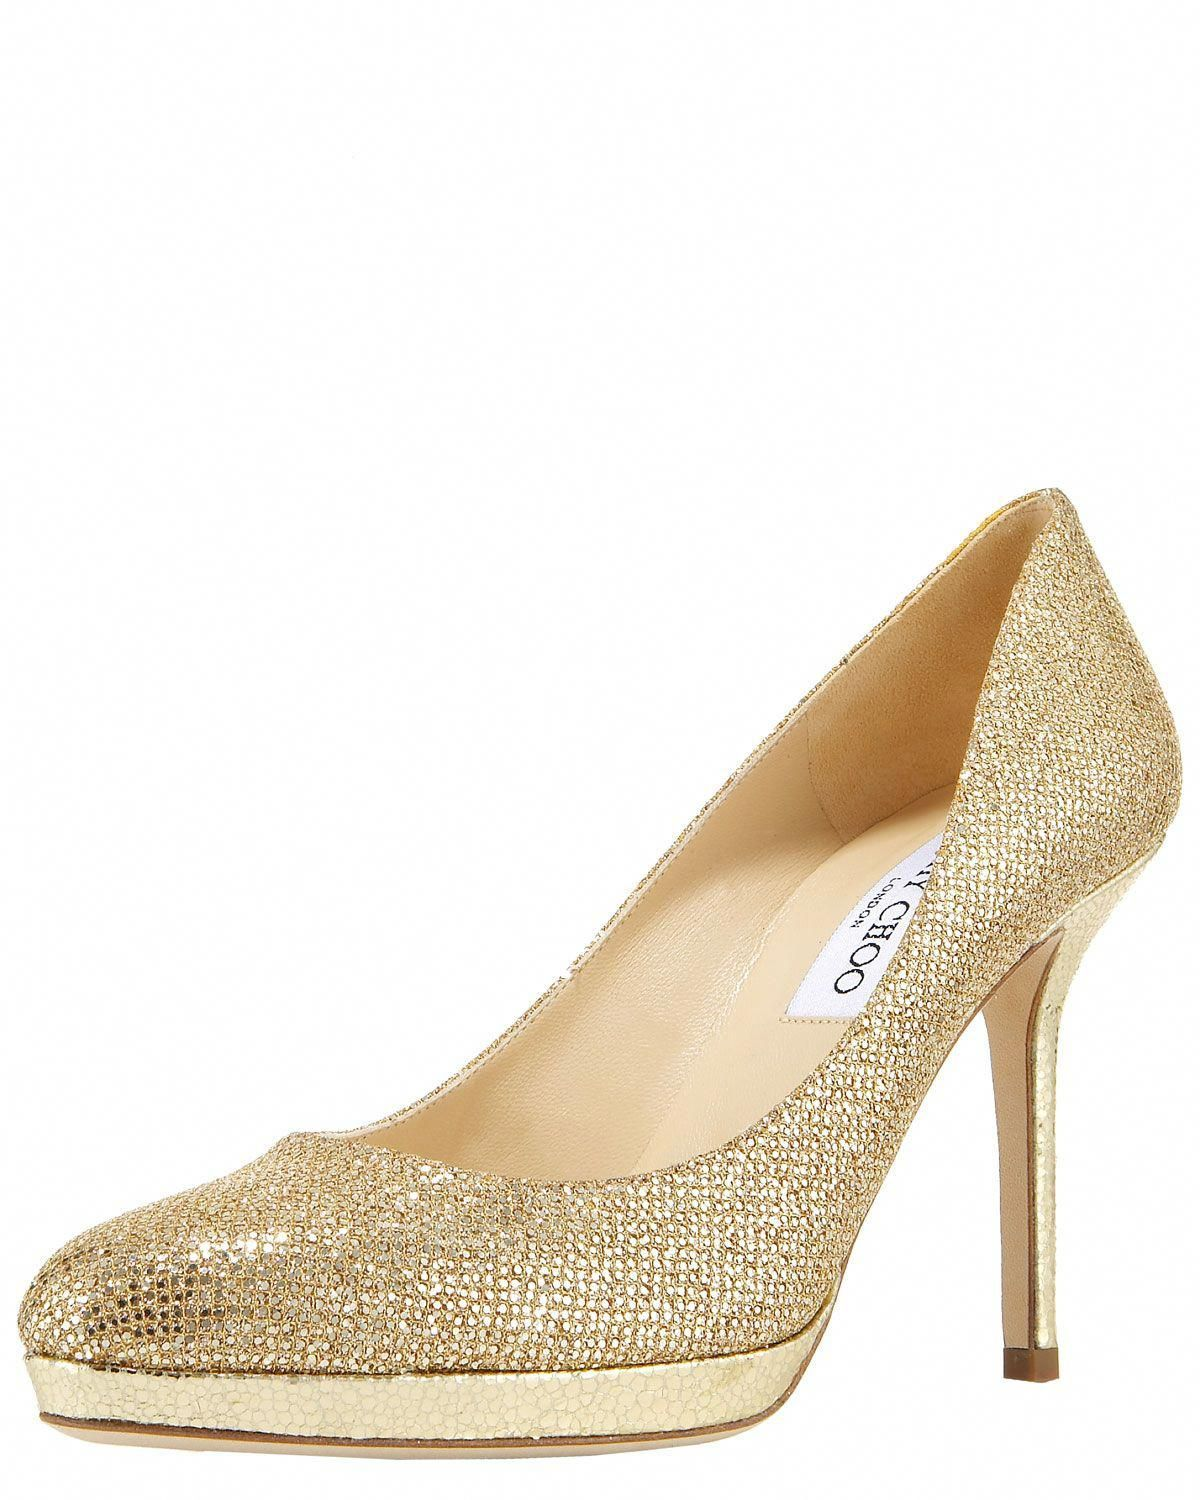 a3a33ad2565172 Jimmy Choo Glitterfabric Platform Pump in Gold